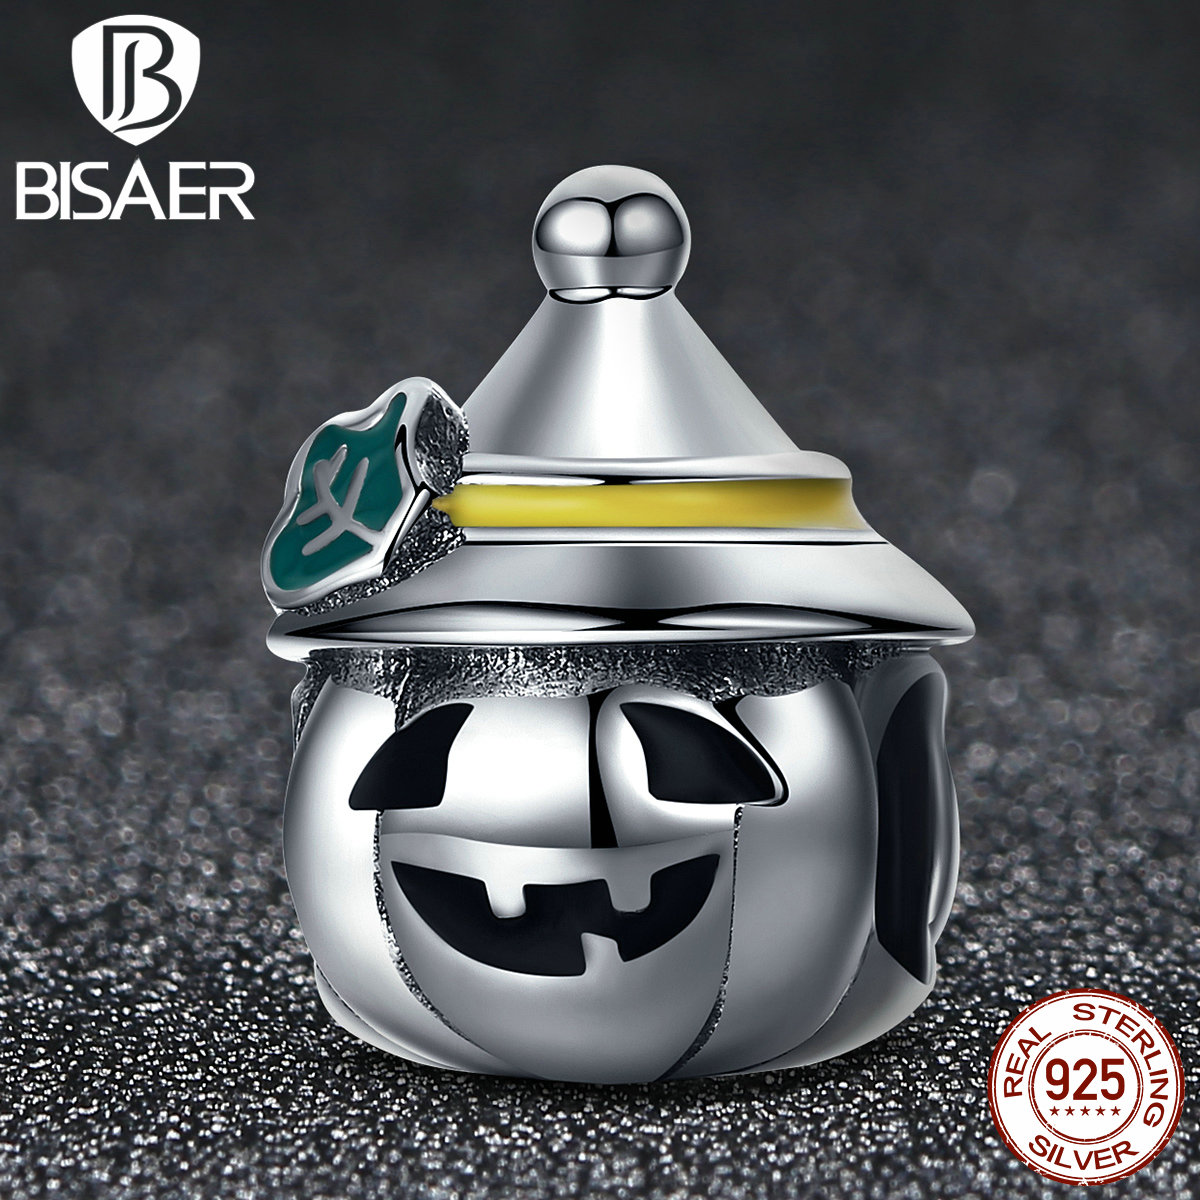 BISAER Authentic 925 Sterling Silver Happy Halloween Memory Beads Fit Pandora Charms Bracelets DIY Accessories Gift HSC164